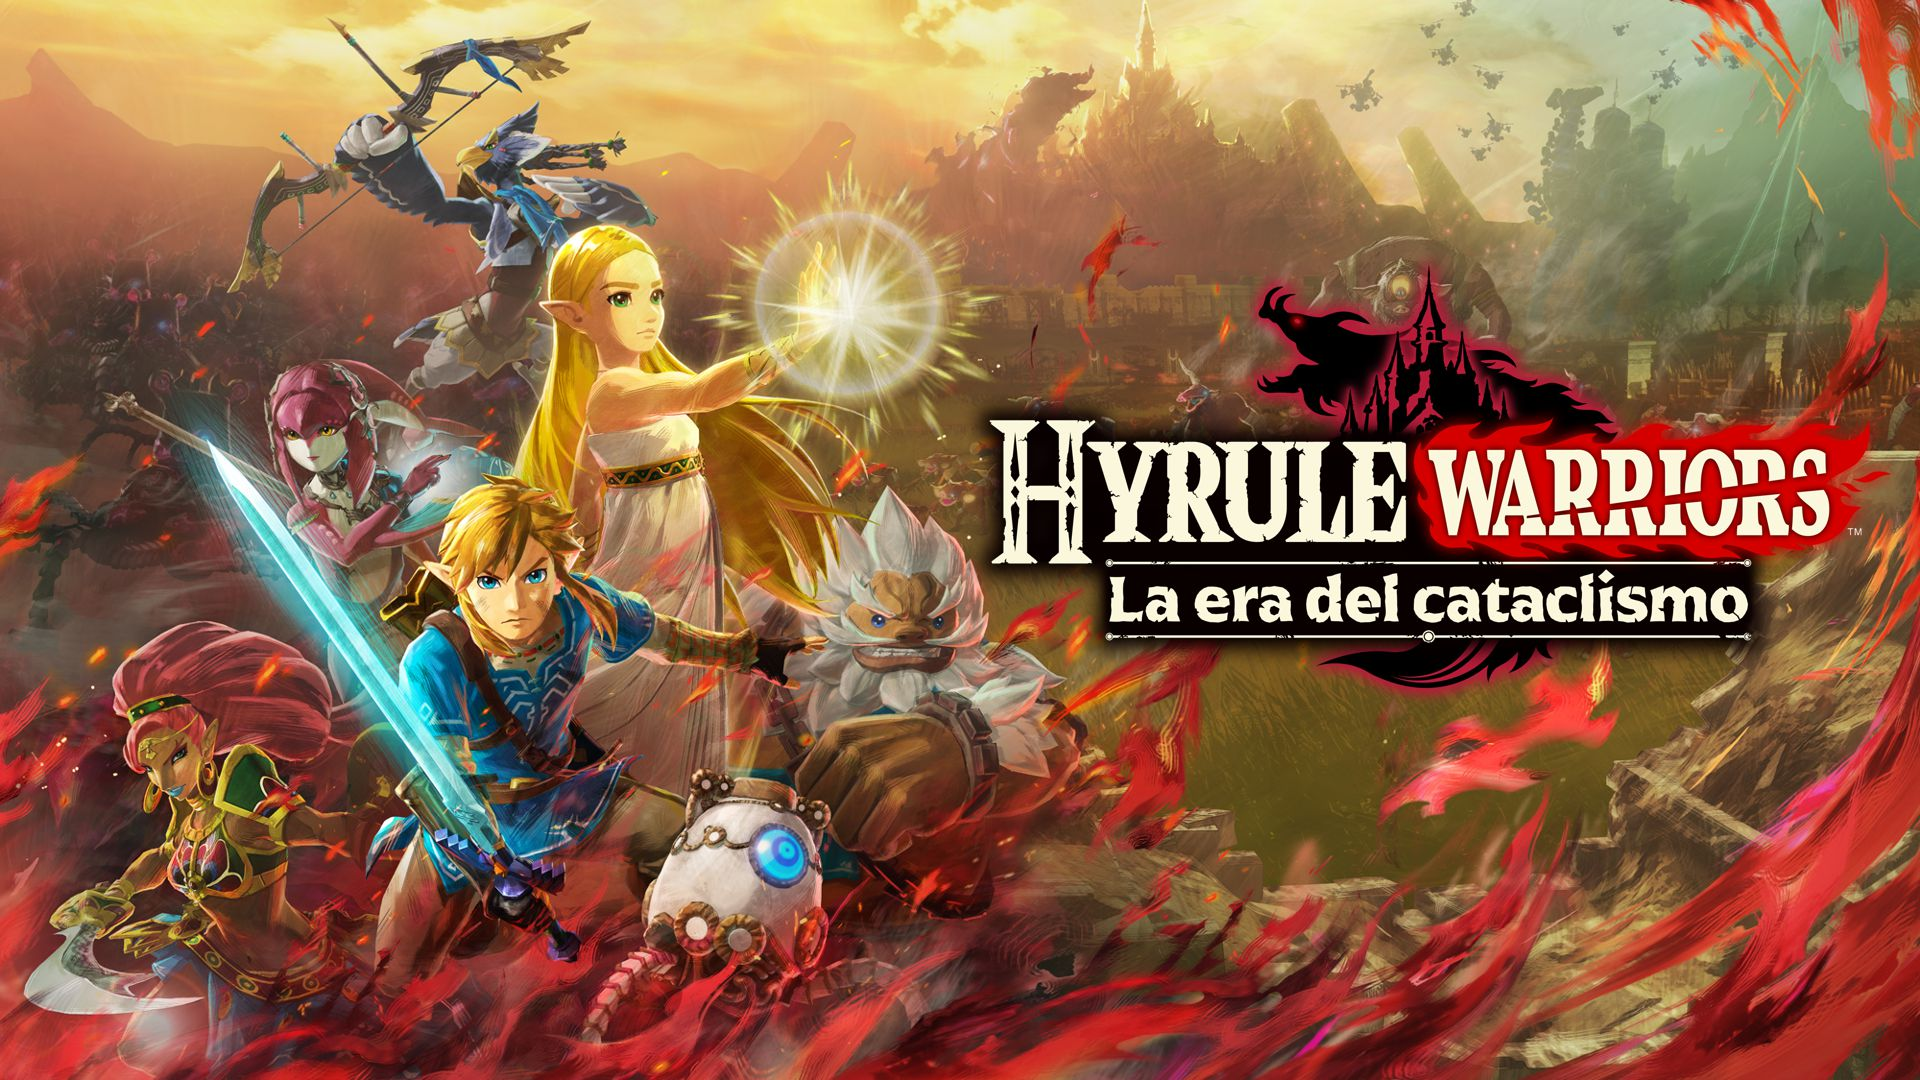 Hyrule Warriors La era del cataclismo Principal